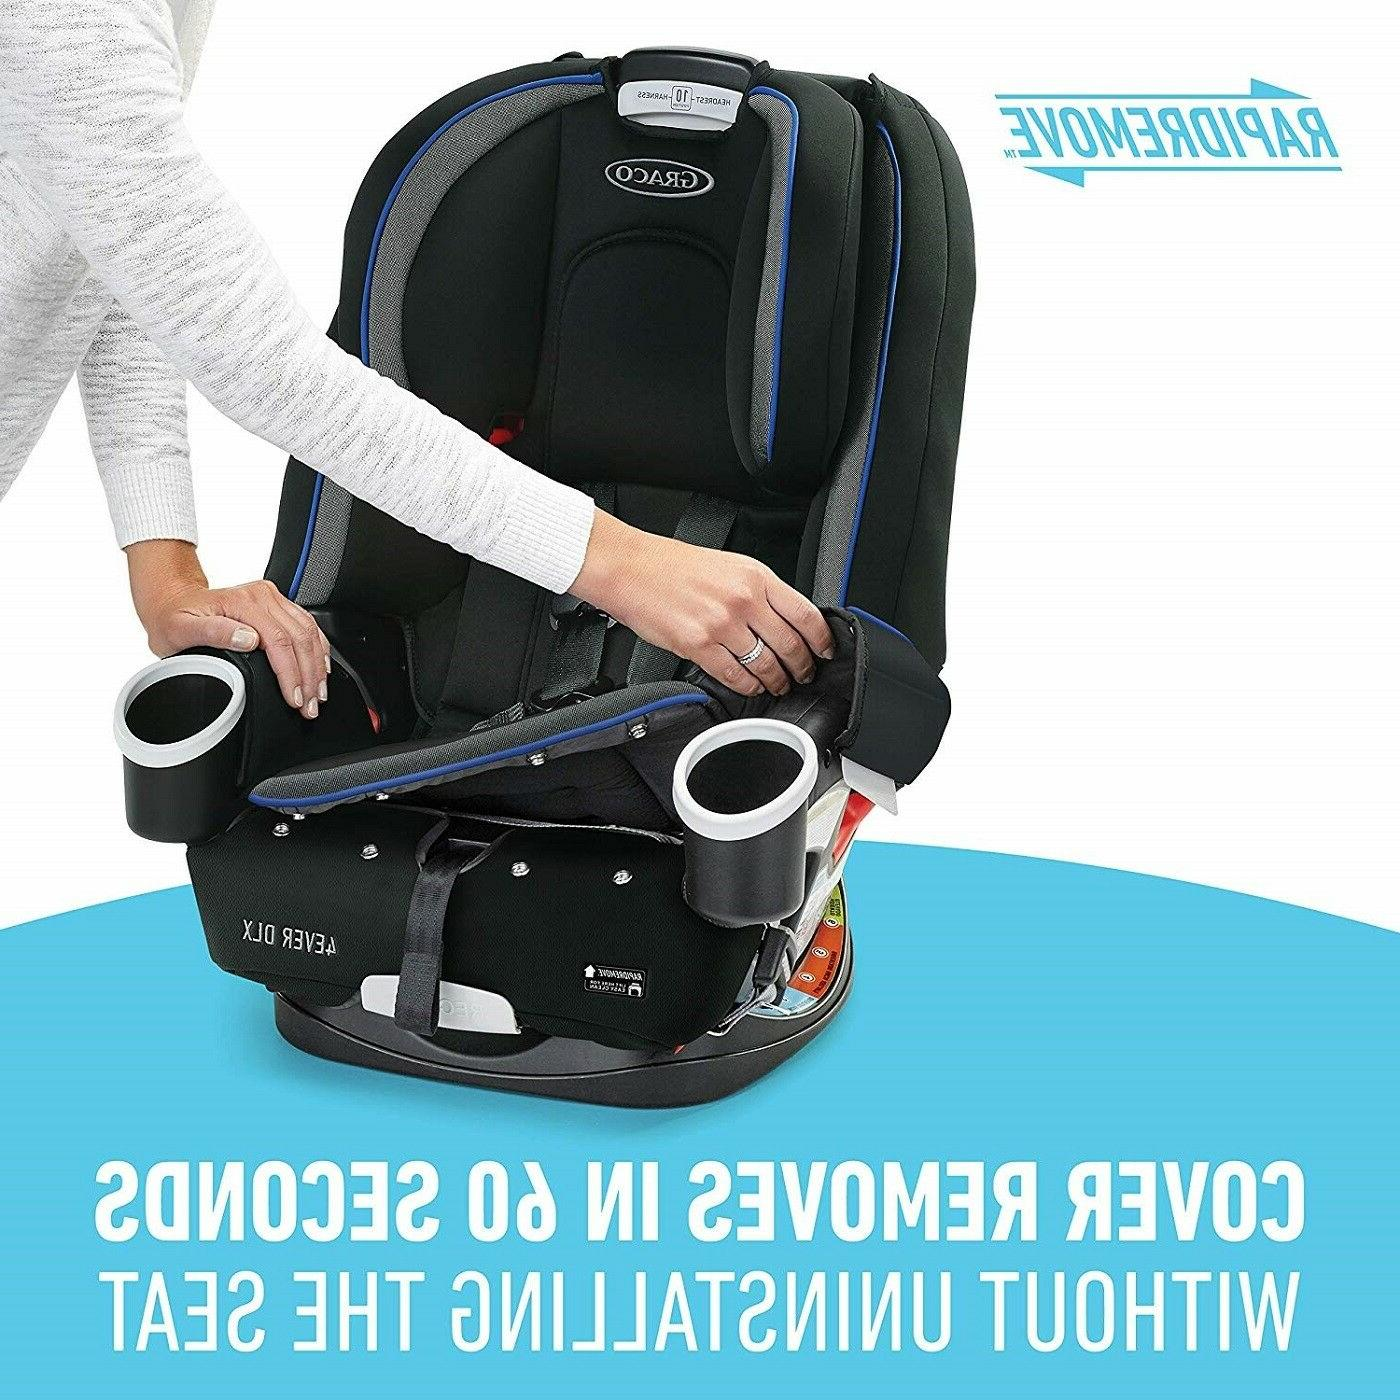 Graco Baby 4Ever DLX 4-in-1 Child Safety 2019